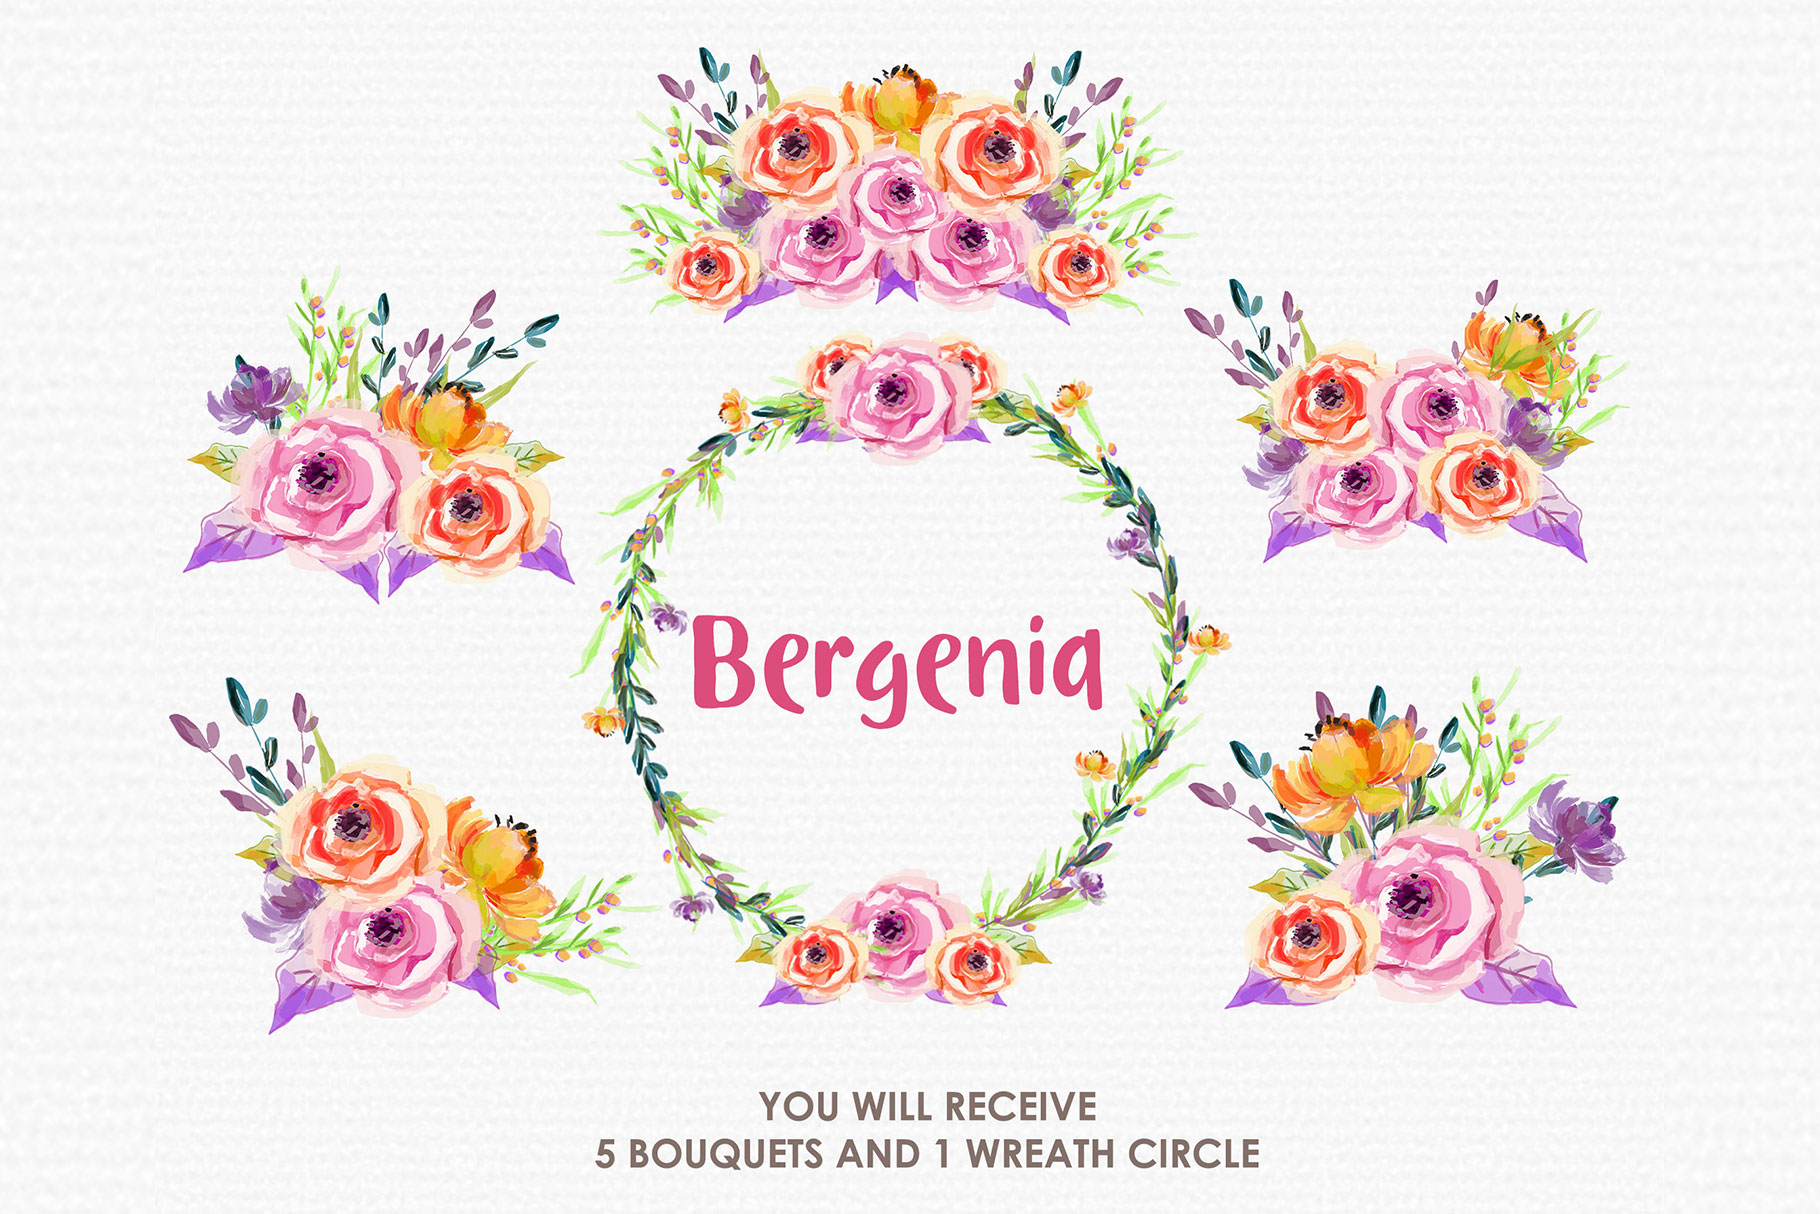 Bergenia - Digital Watercolor Floral Flower Style Clipart example image 3